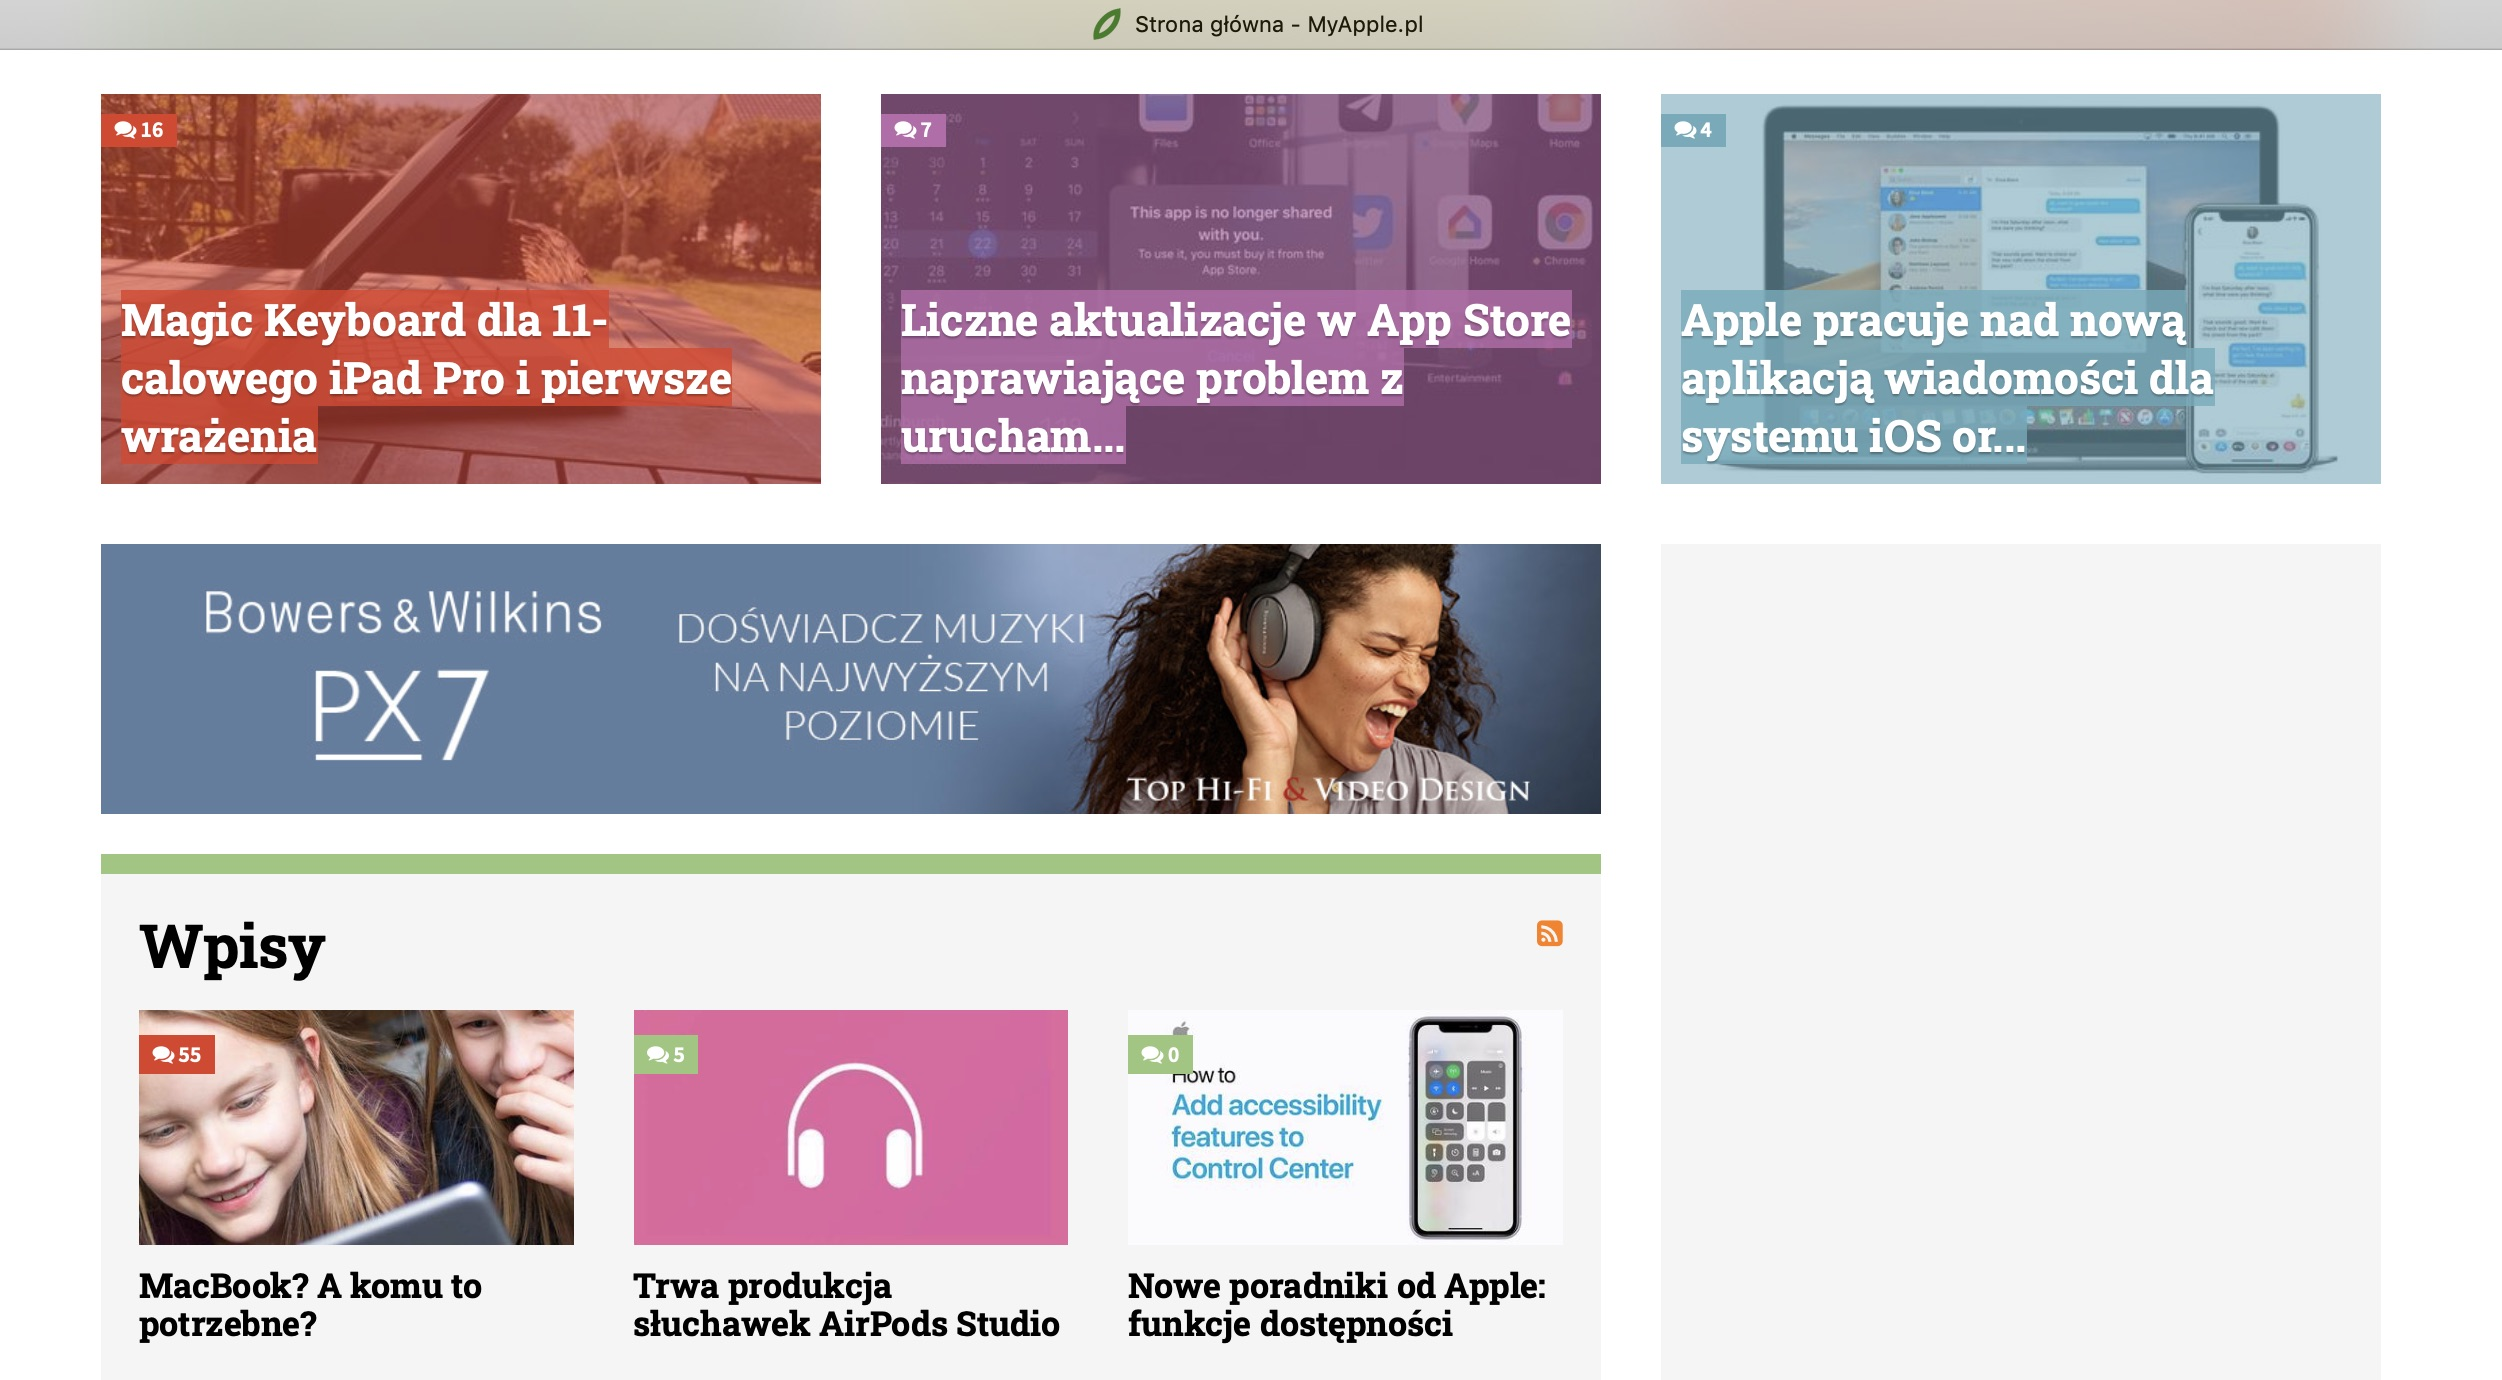 MyApple.pl website. Article links in the top and bottom parts, a banner ad in the middle that seems to blend in.